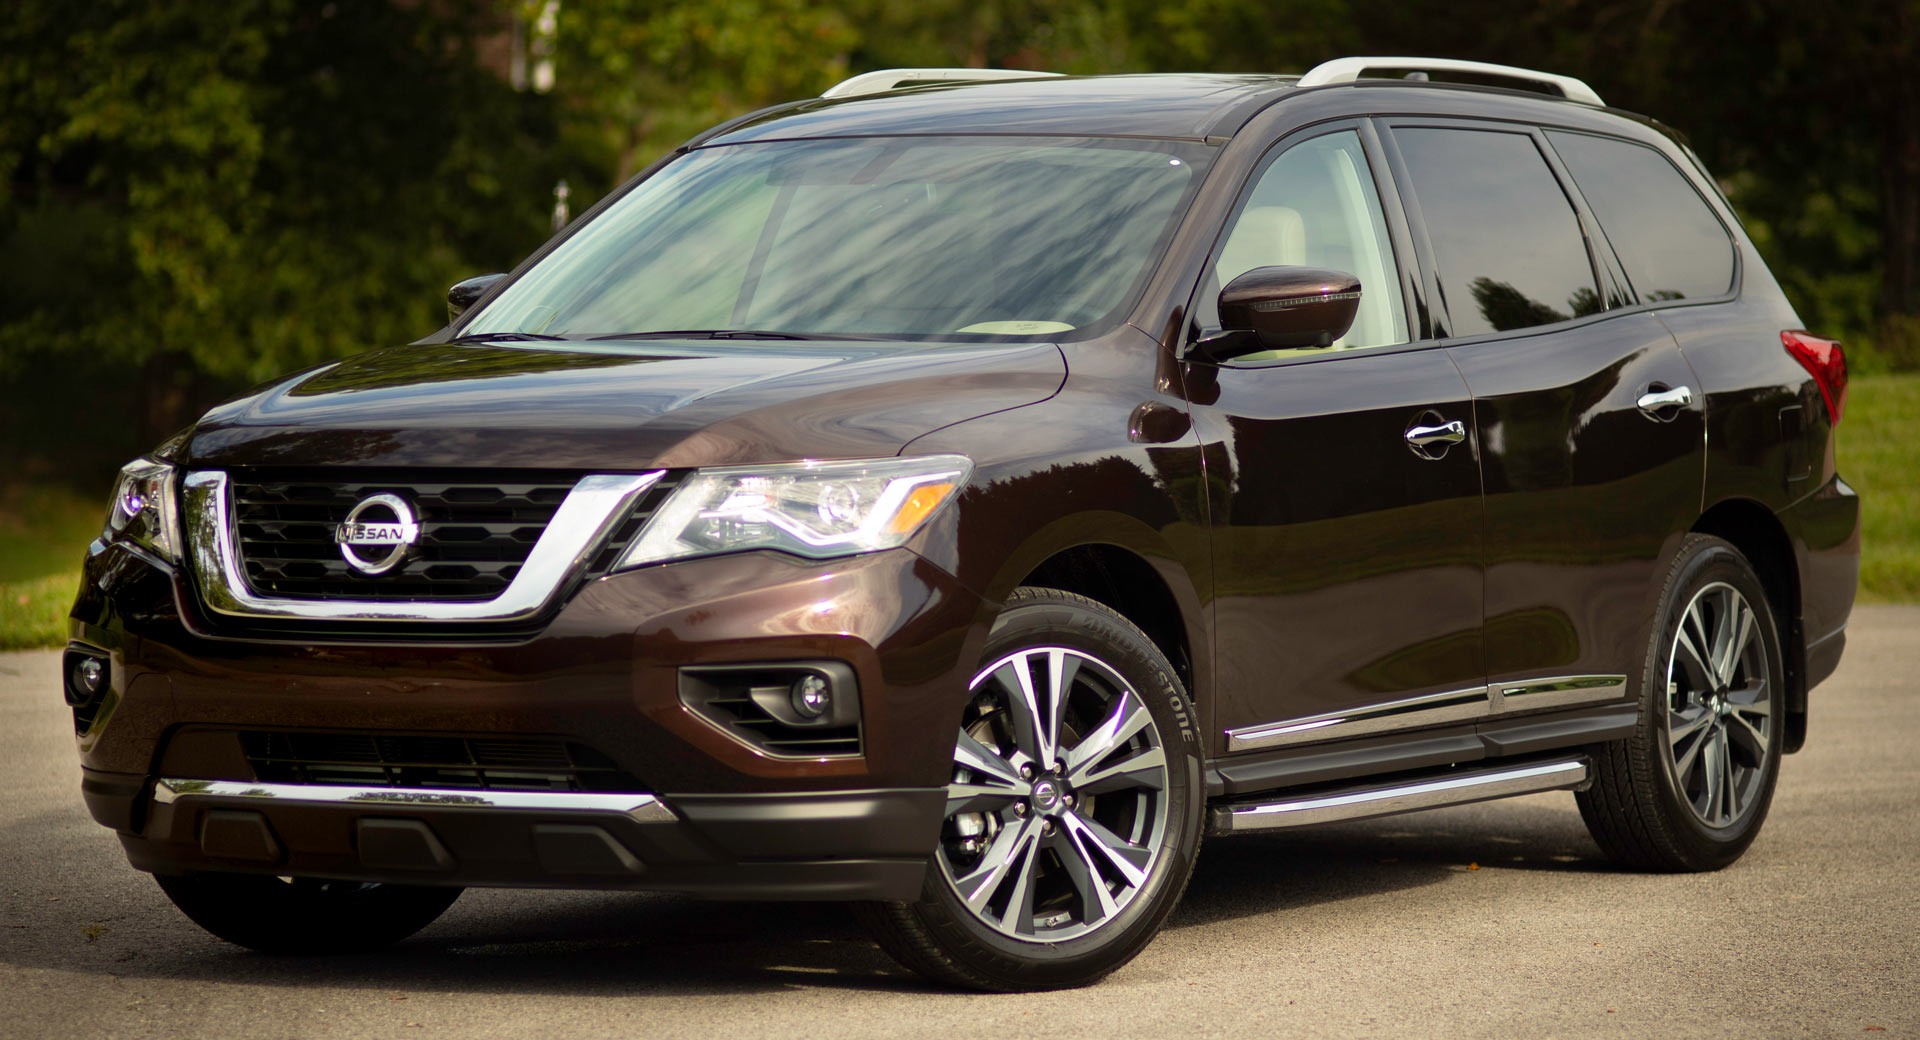 Nissan Pathfinder 2019 >> 2019 Nissan Pathfinder Arrives With Newly Standard Driver Assistance Systems | Carscoops